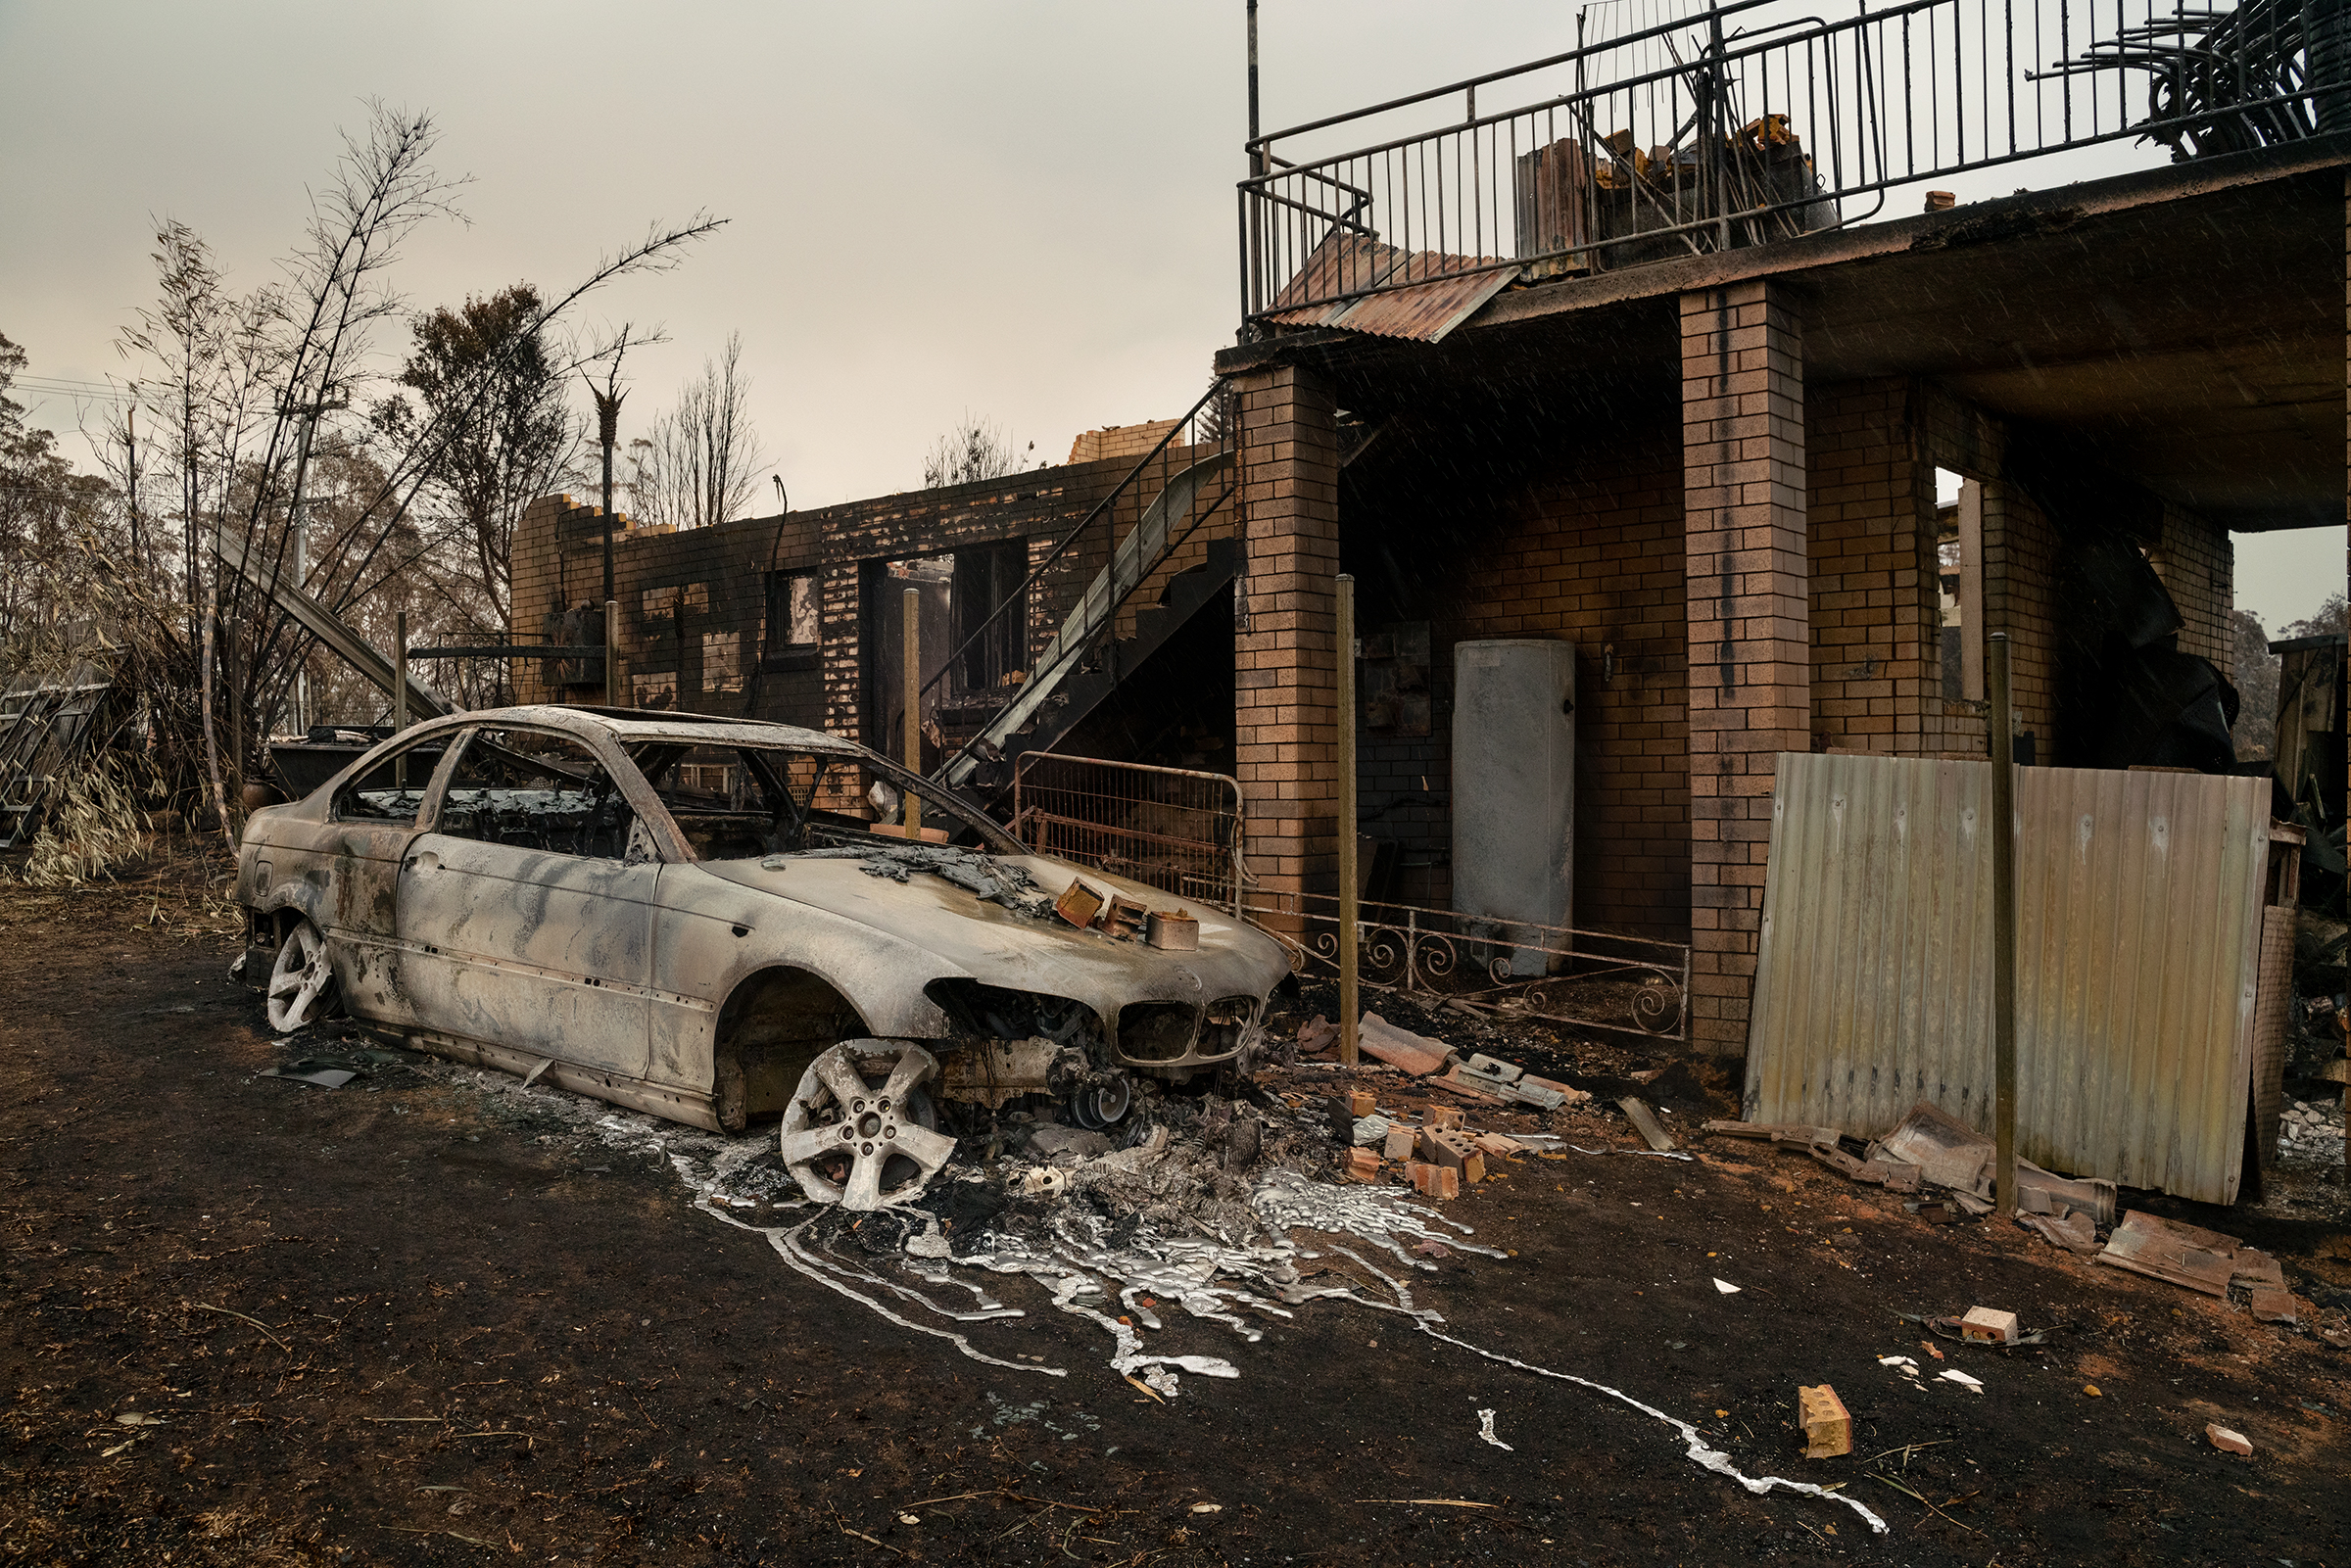 A damaged property and vehicle in Lake Conjola, New South Wales, on Jan. 5.